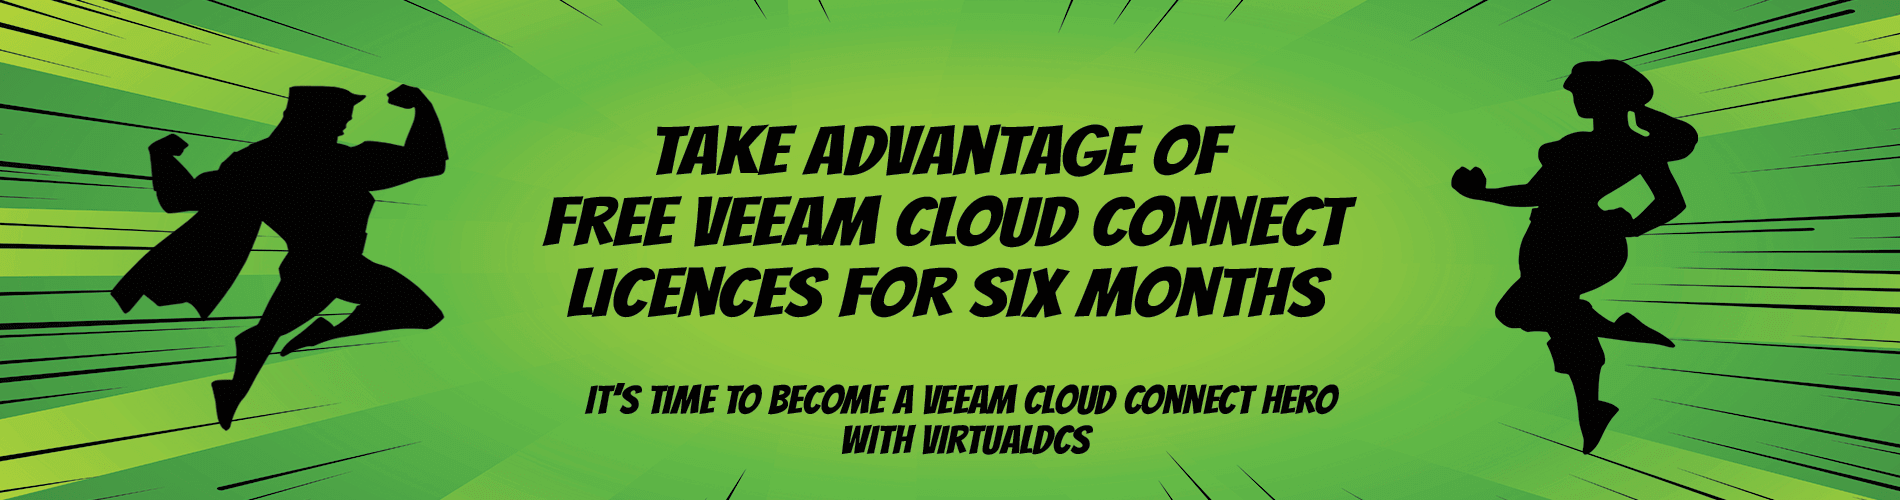 veeam cloud connect free